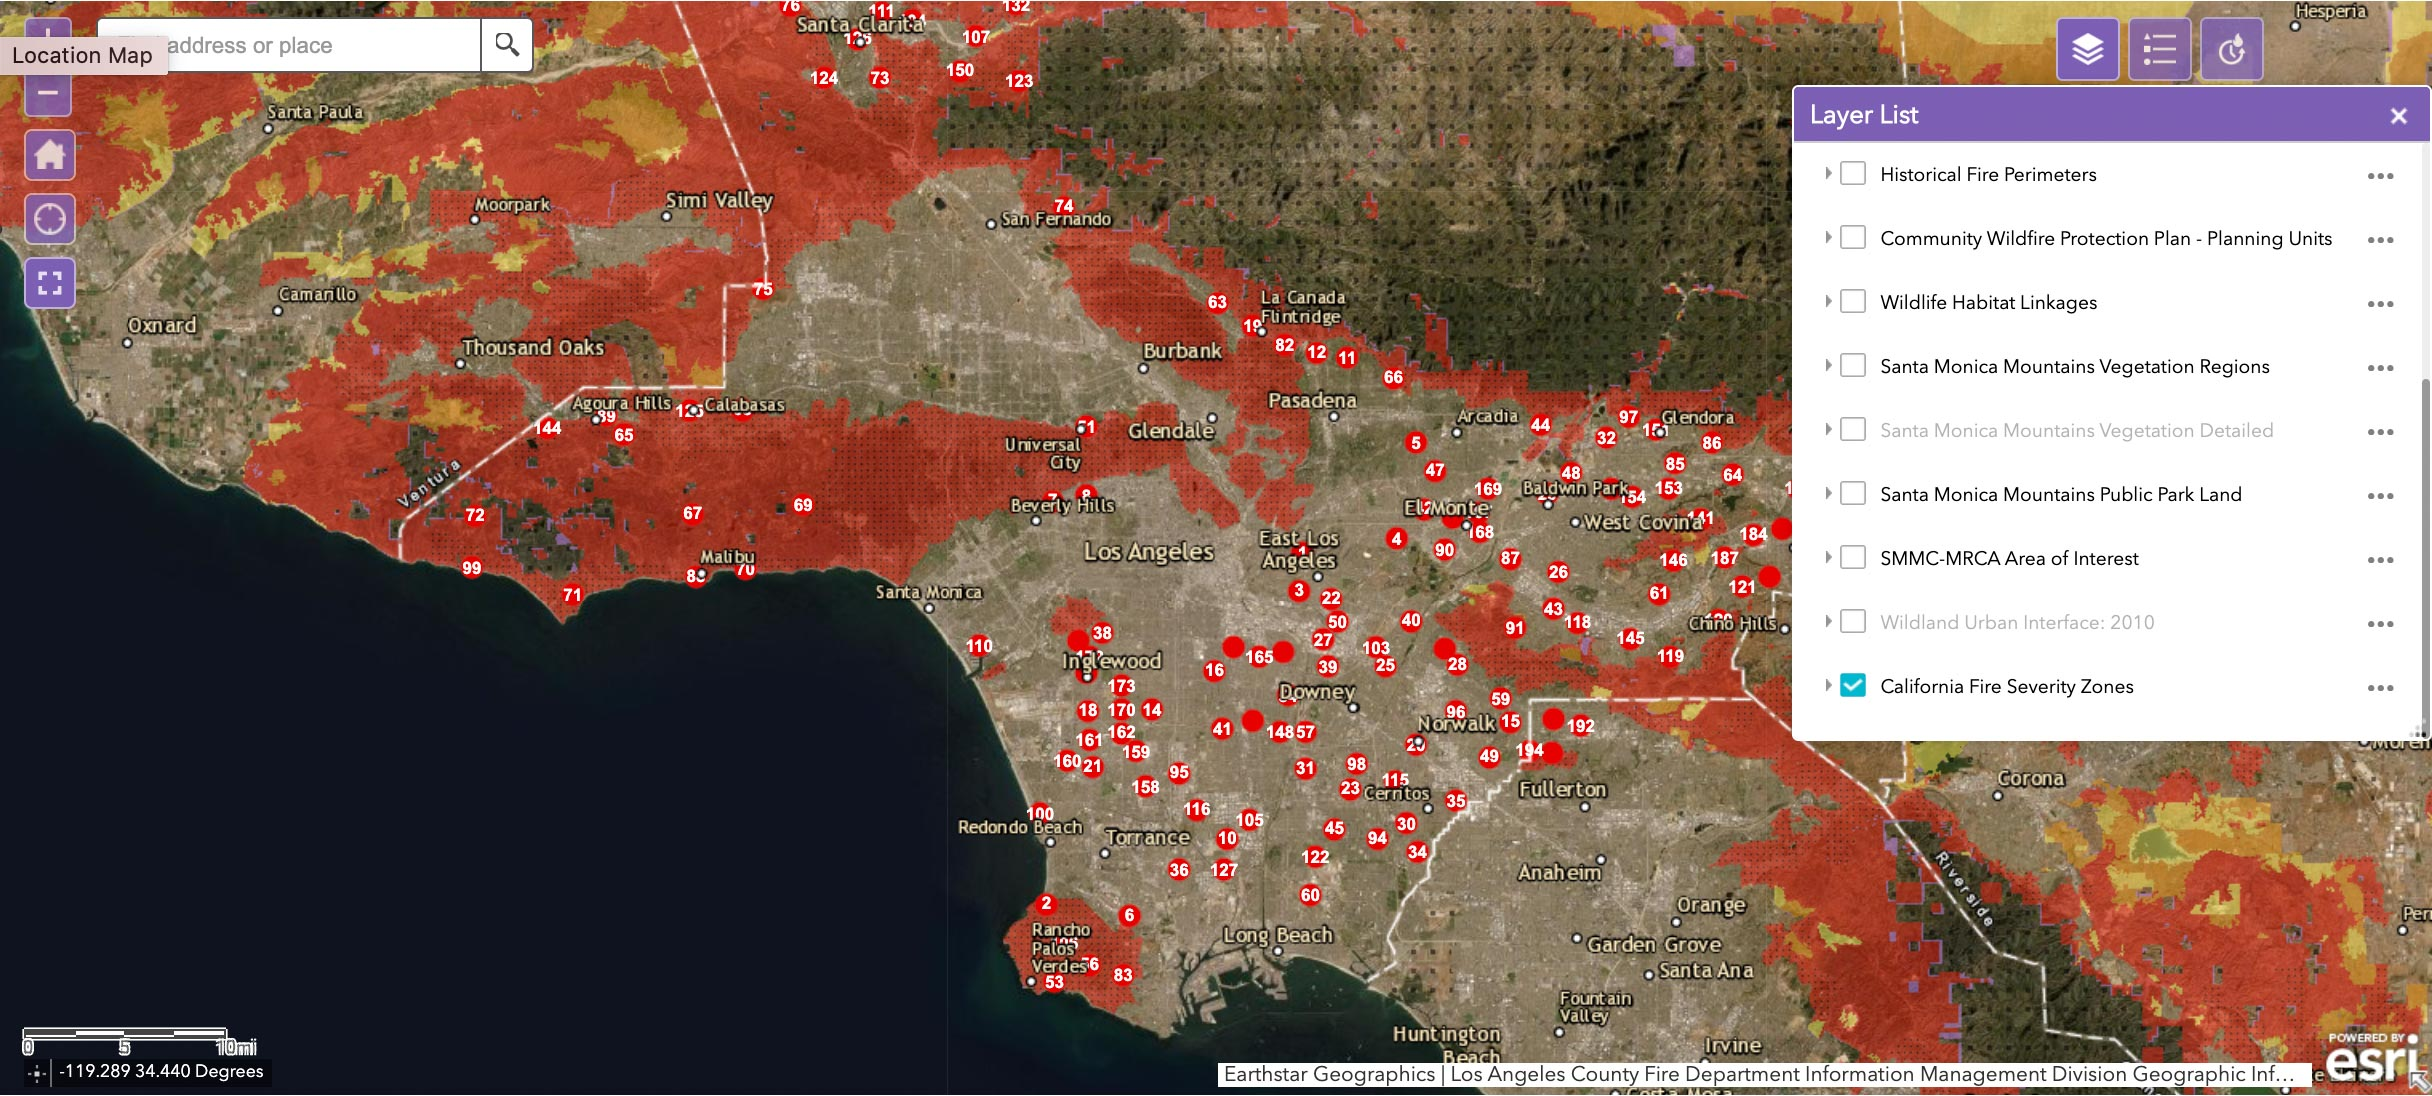 GIS map showing Los Angeles County Fire Stations and California Fire Severity Zones